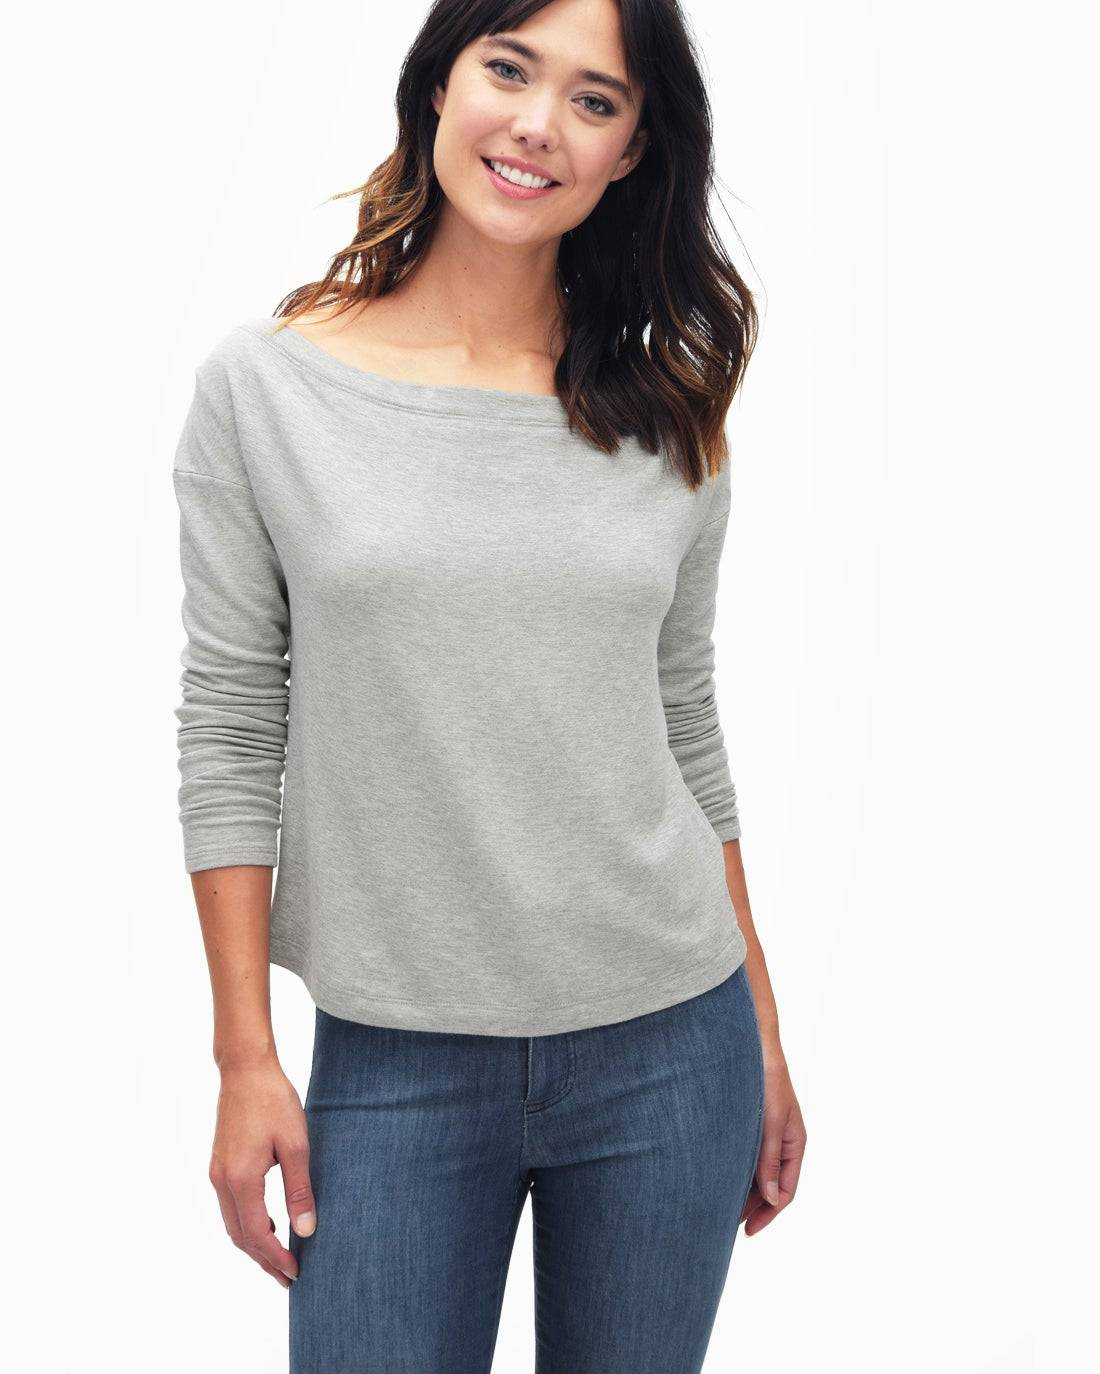 Splendid Supersoft Brushed French Terry Slouchy Boatneck Top  - Heather Grey - Female - Size: Large